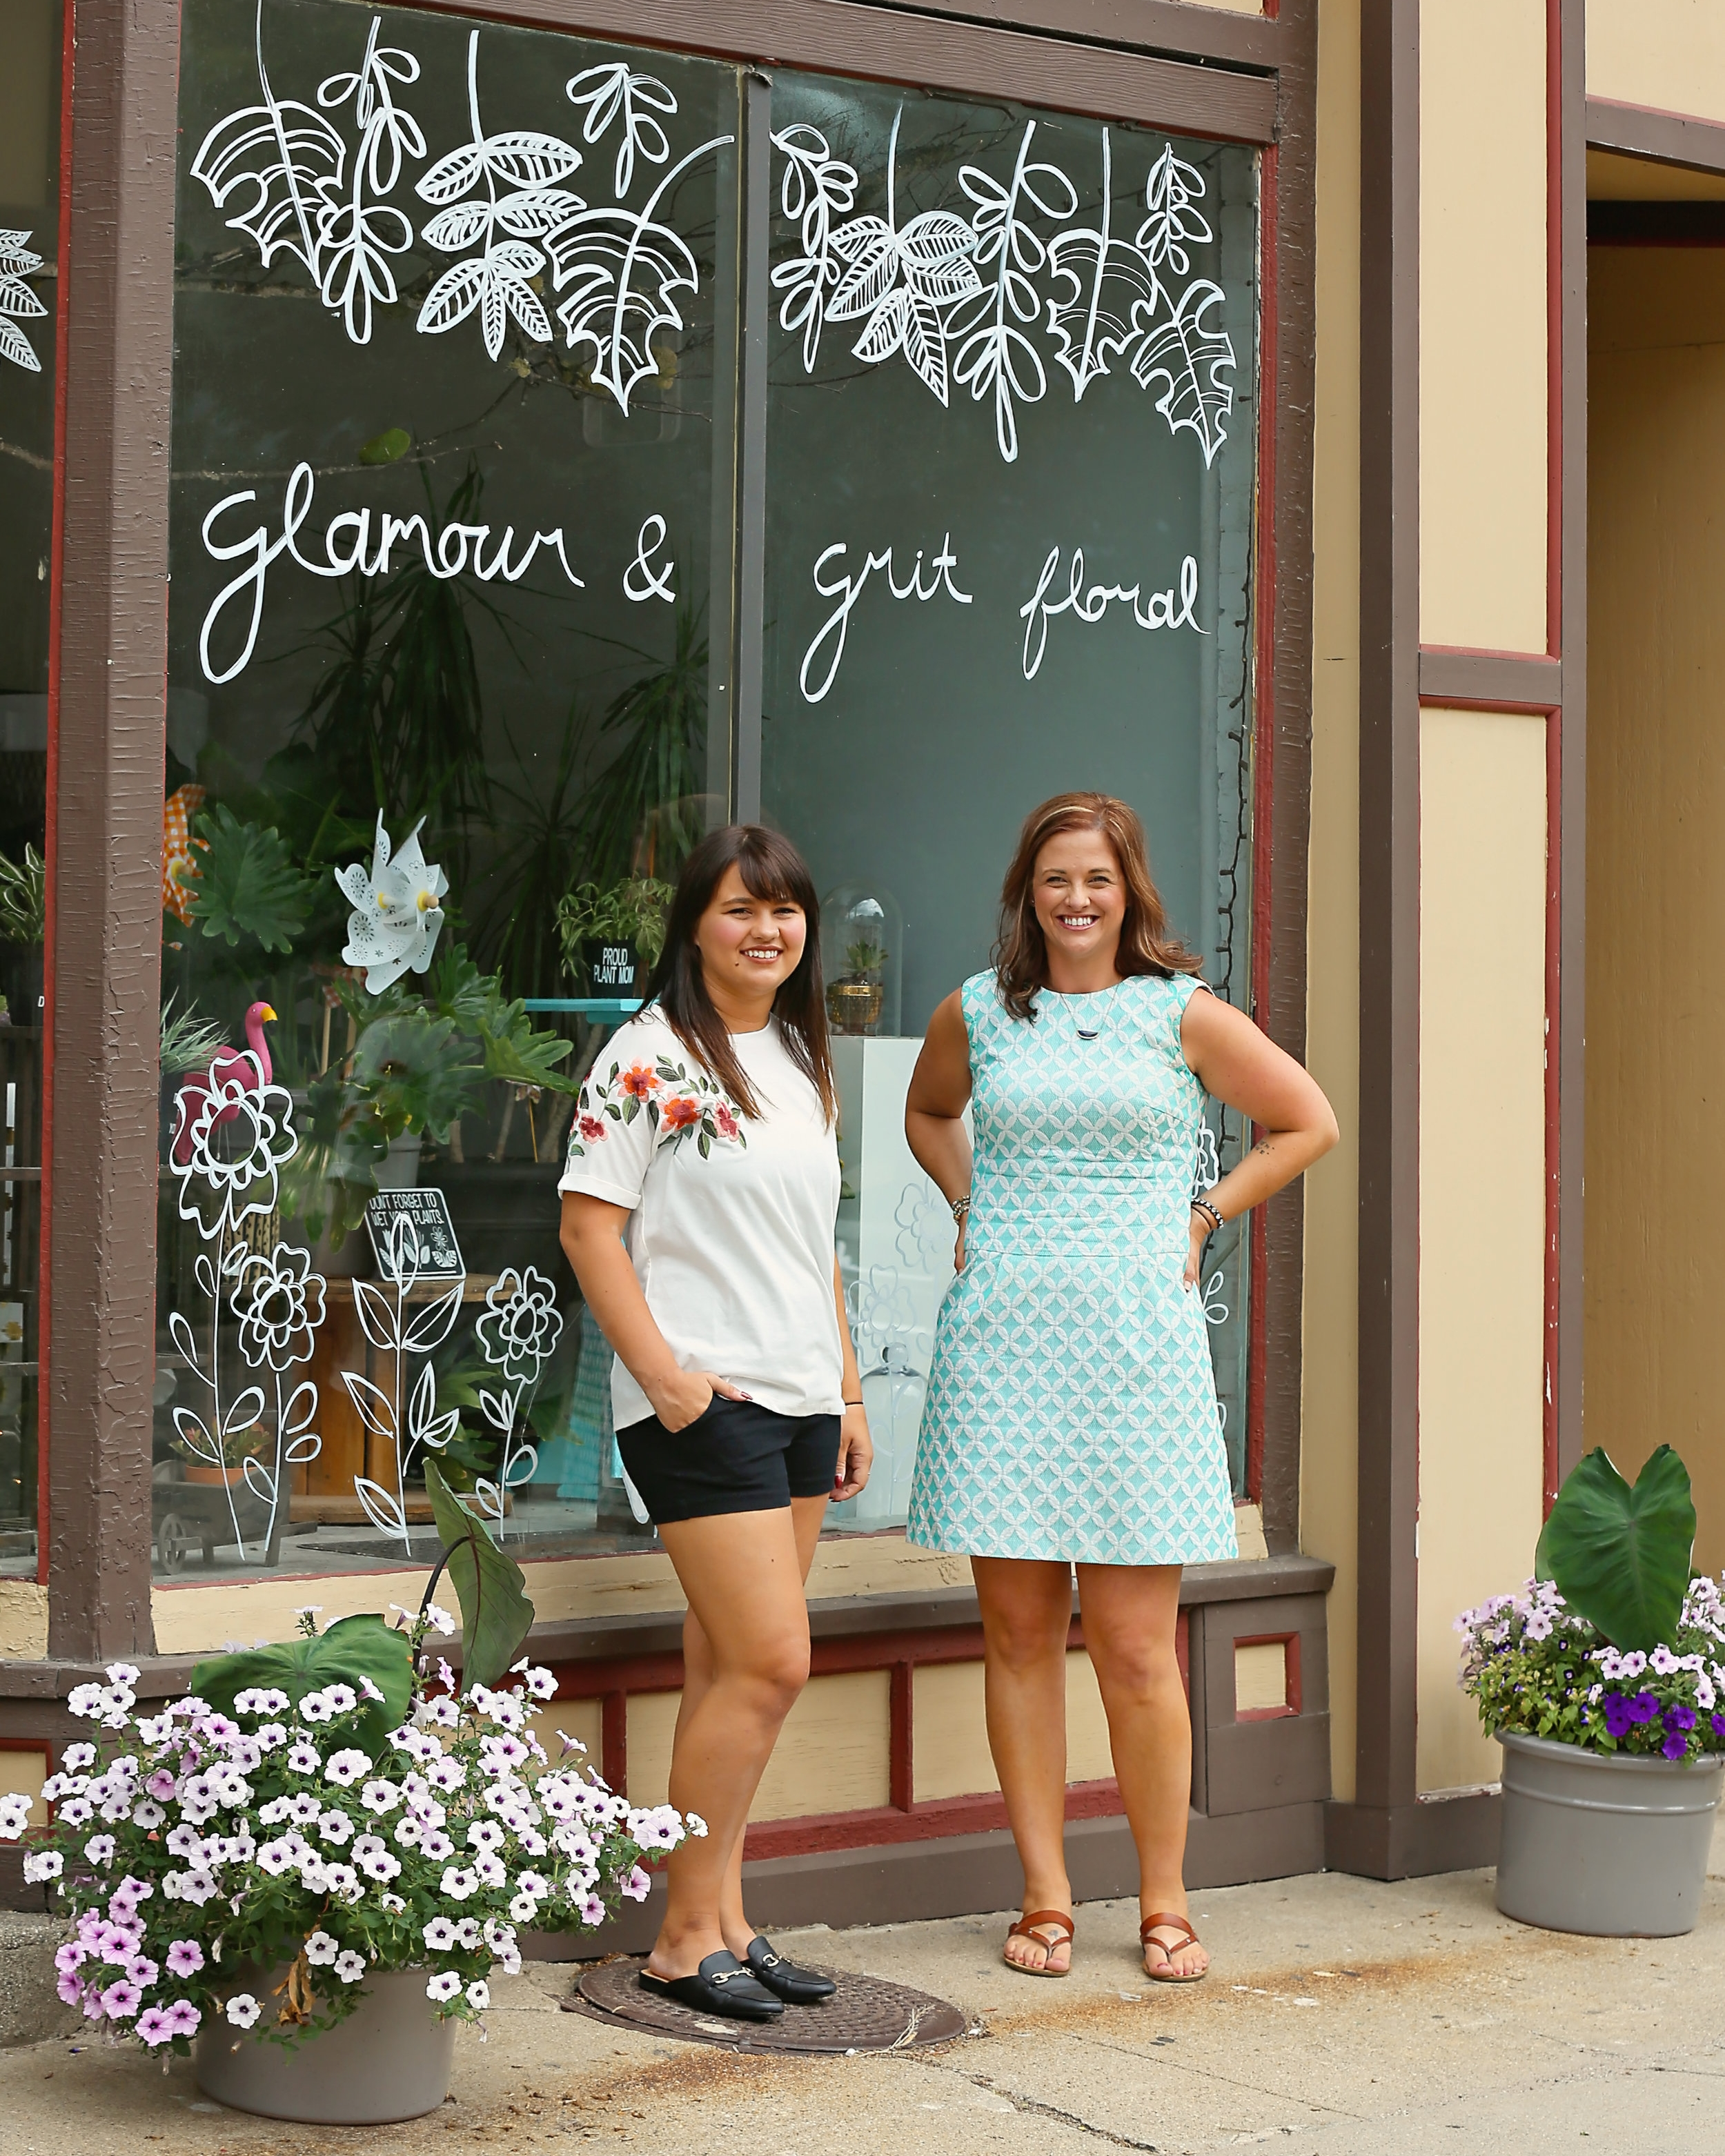 HELLO! - HEATHER GRIT - OWNER & FLORAL DESIGNERKAILEE NABER - FLORAL DESIGNER/STYLINGEMILY FITTON - FLORAL DESIGNER & ORGANIZATIONAL EXTRAORDINAIRE (TOO COOL FOR TEAM PHOTO)